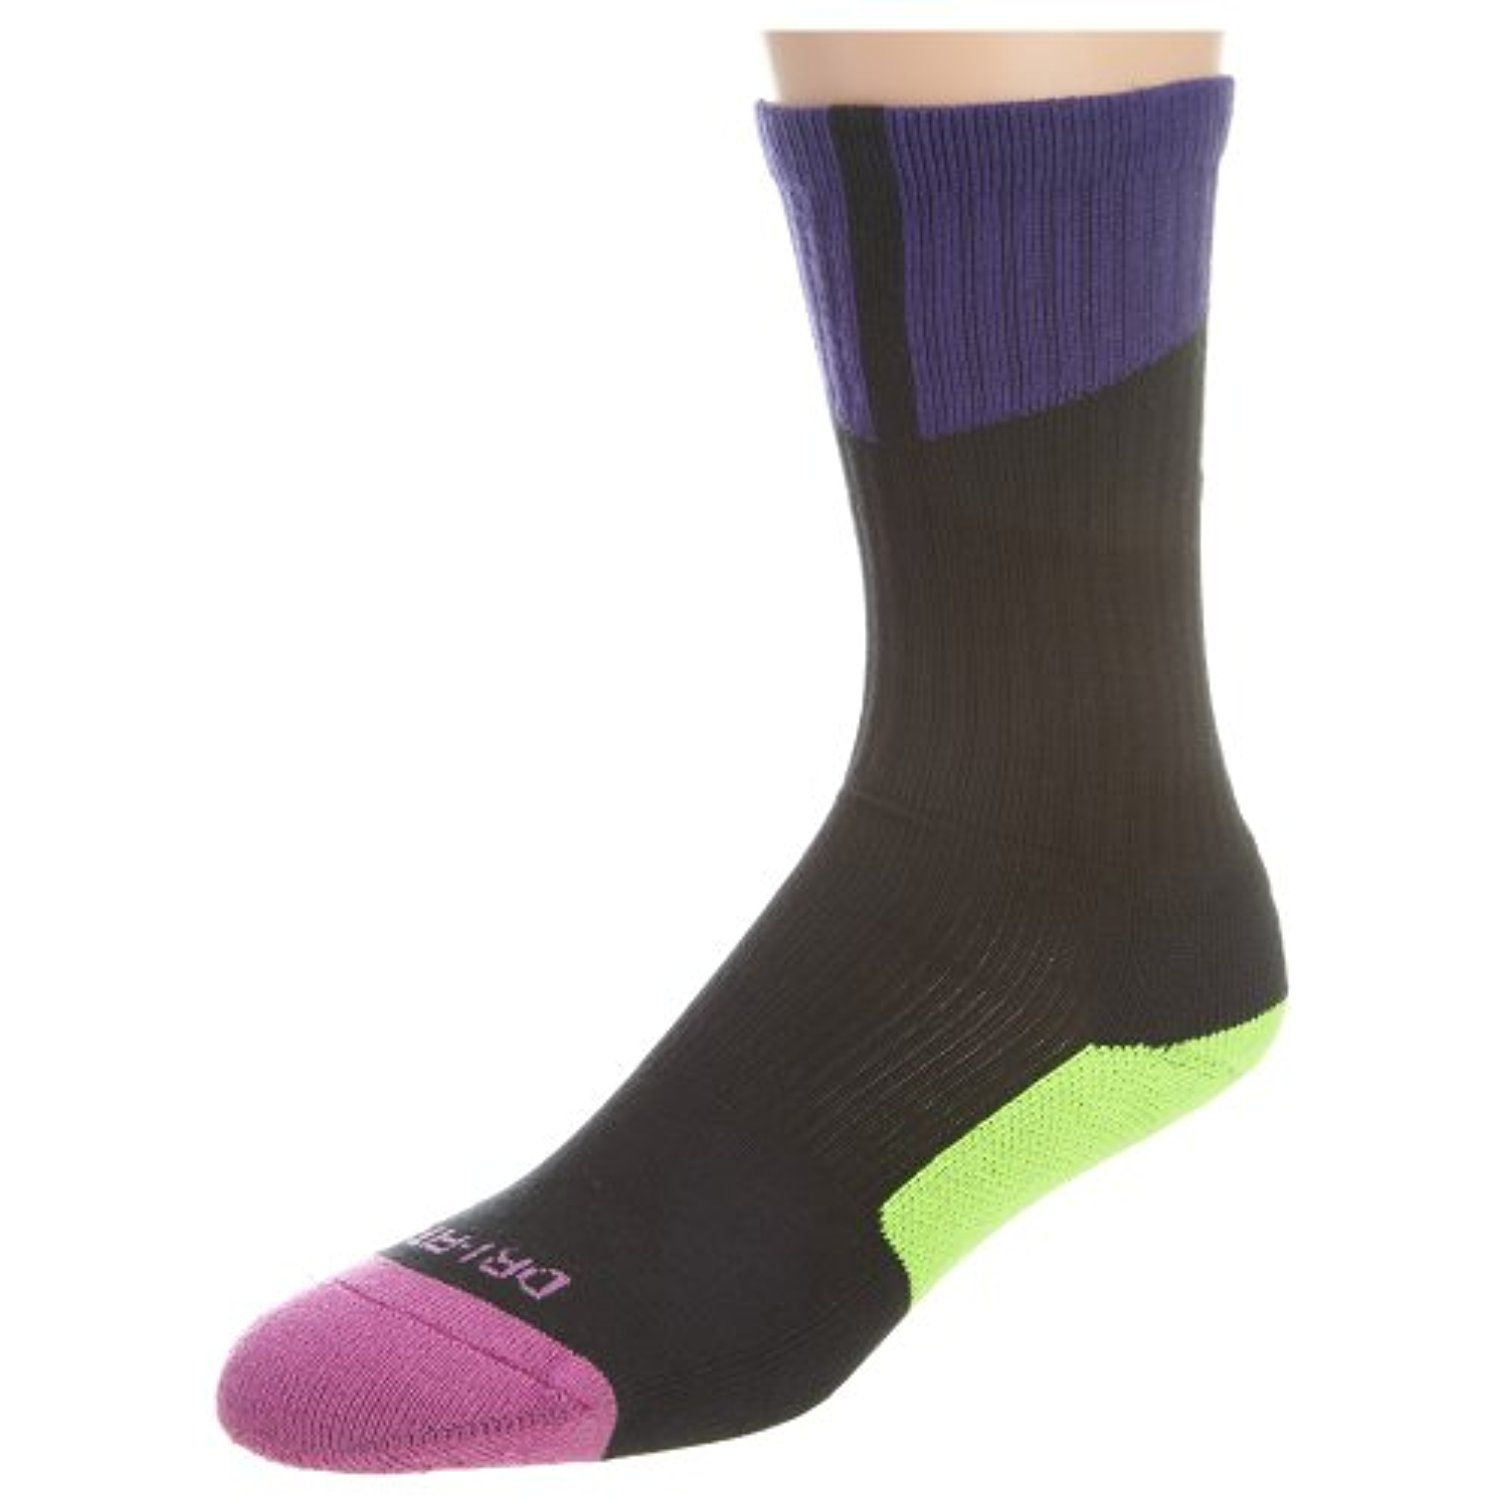 Mens jordan drifit crew socks find out more about the